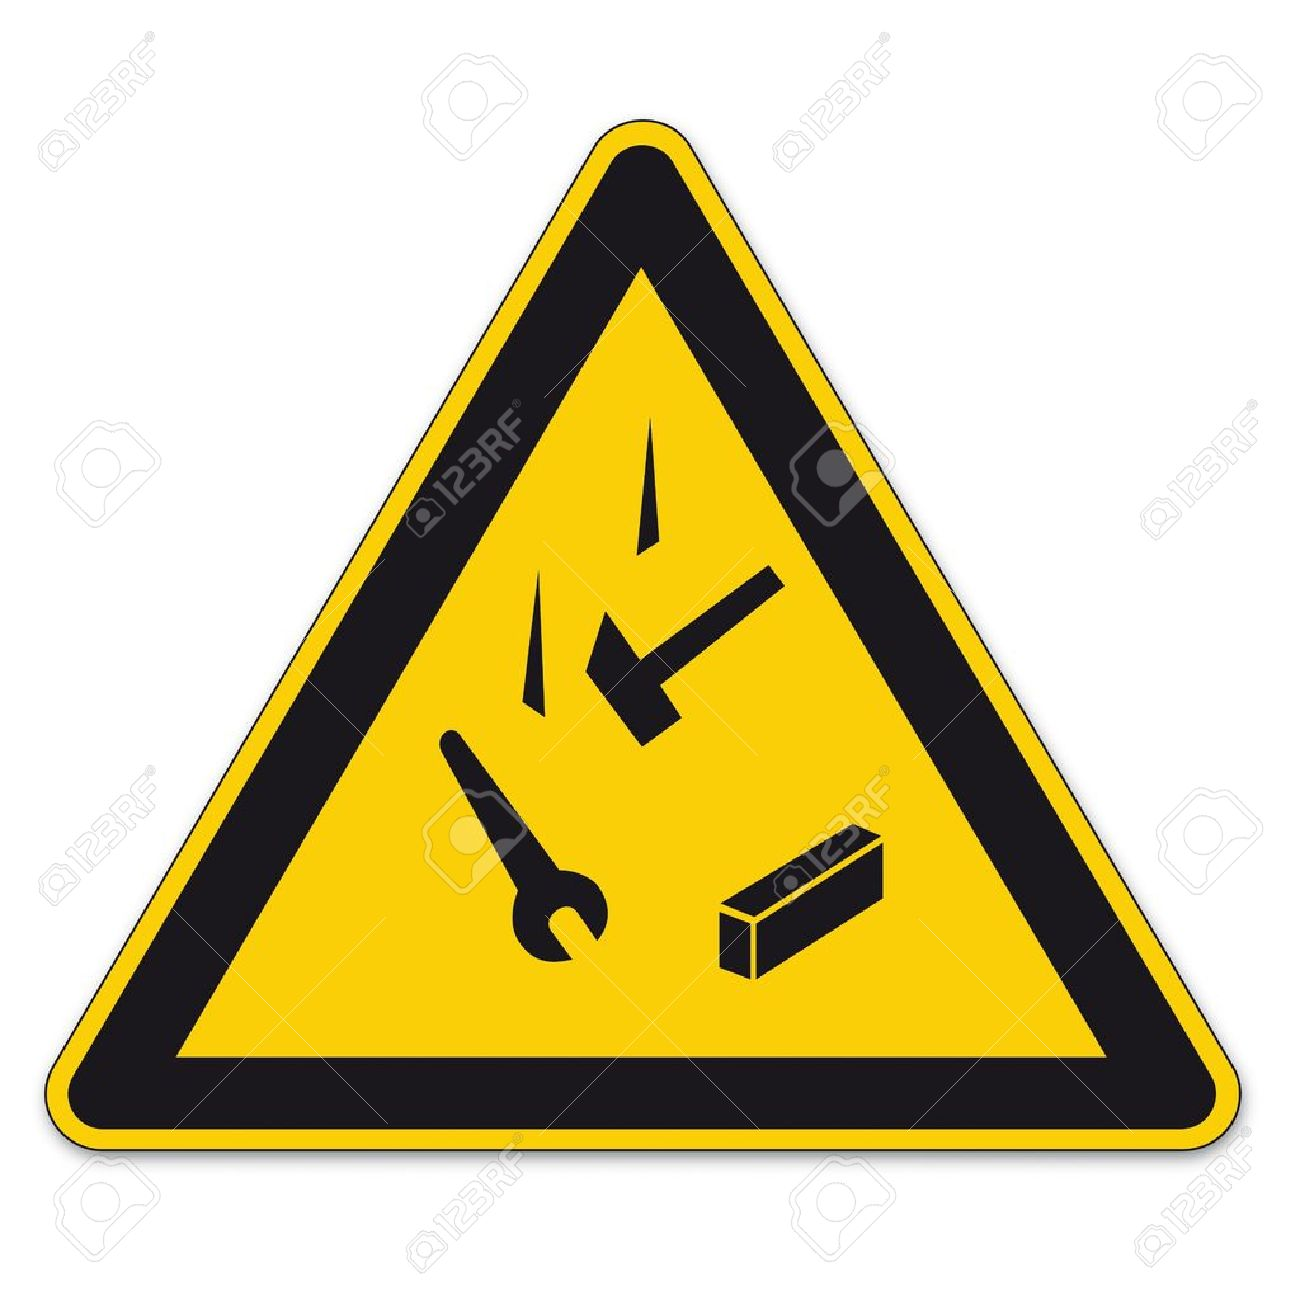 Safety signs warning triangle sign vector pictogram icon BGV falling down against admissions Stock Vector - 15313155